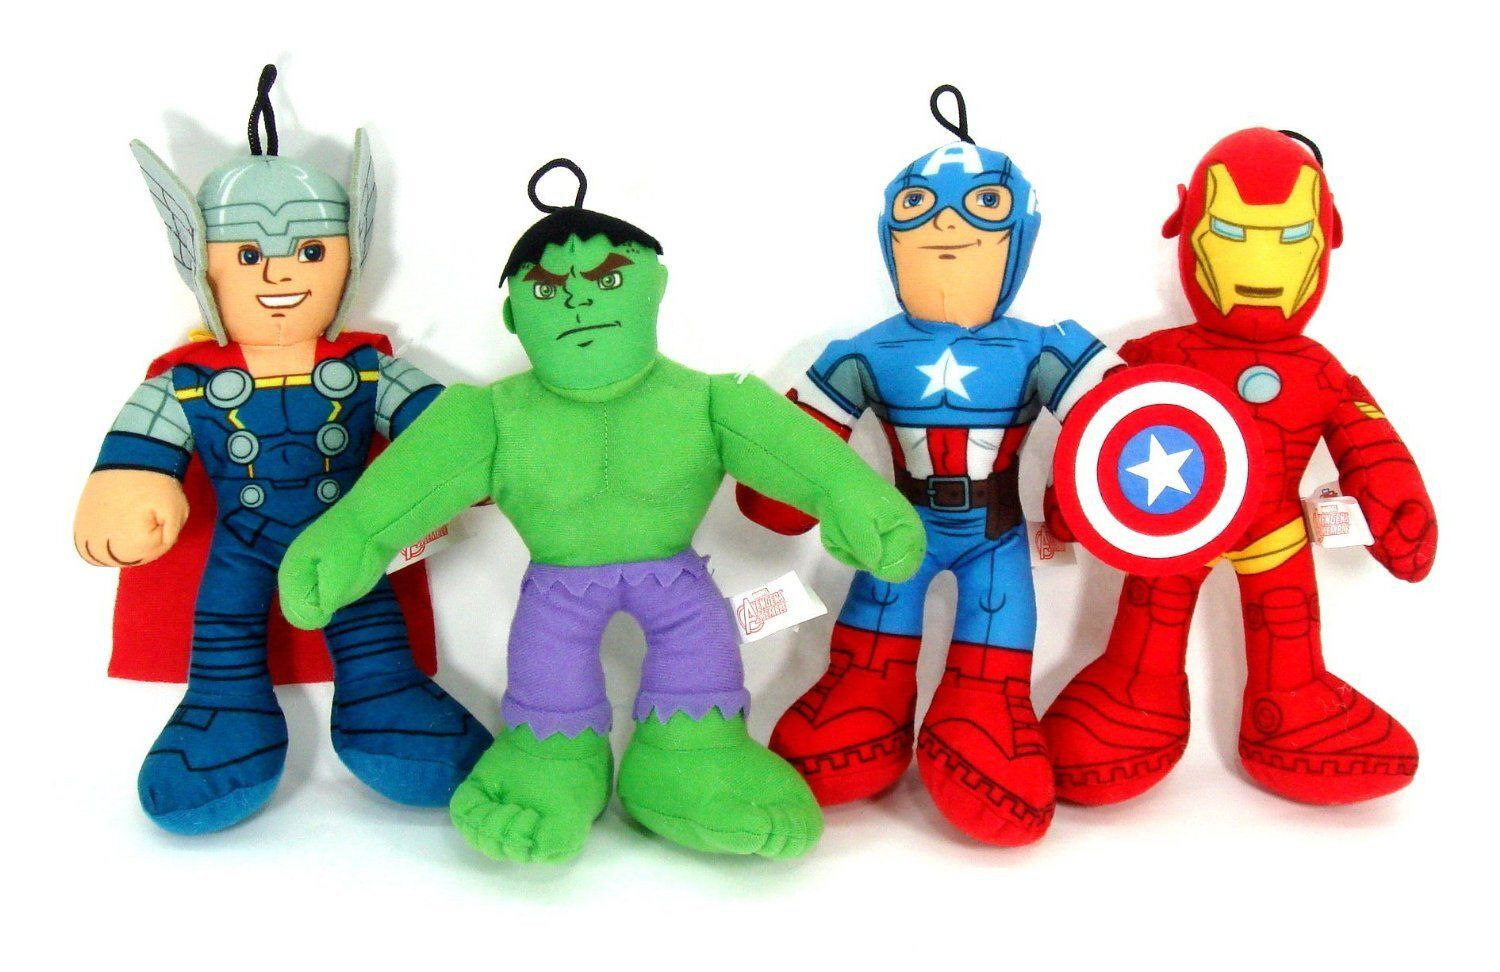 Captain America Thor Hulk Iron Man The Avengers 9  Plush Stuffed Toys-New